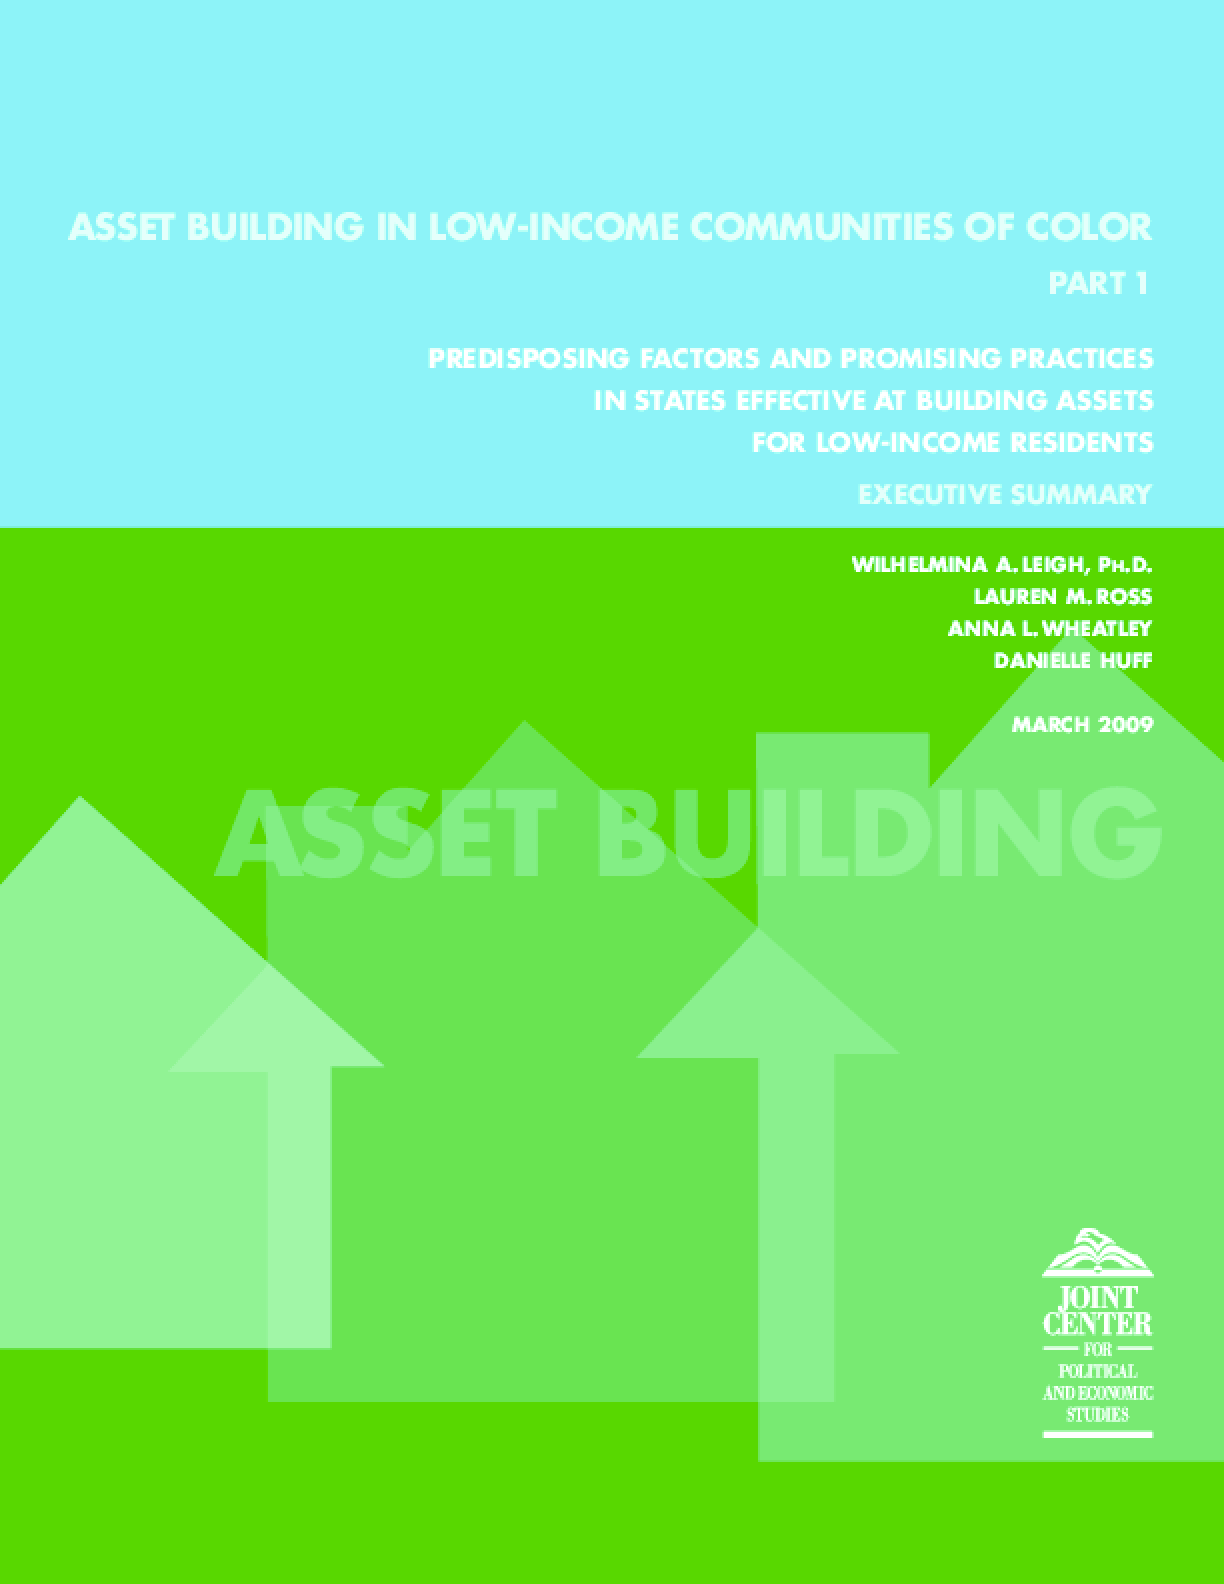 Asset Building in Low-Income Communities of Color, Part 1